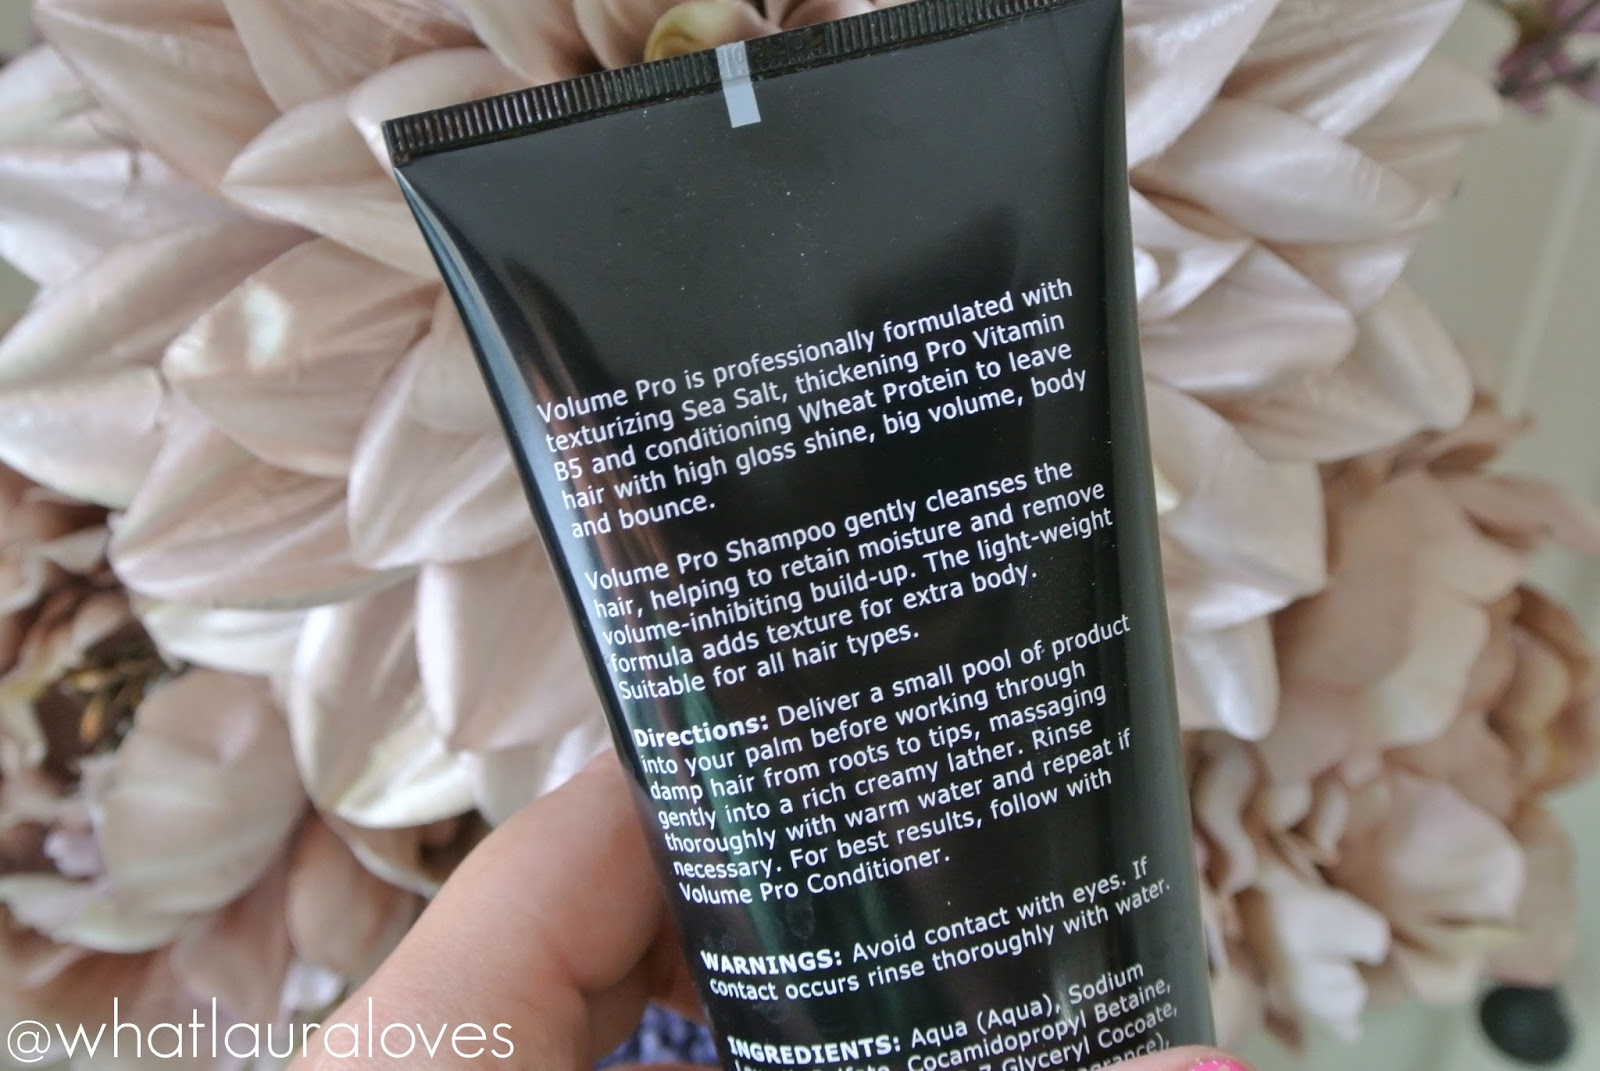 Creightons Volume Pro Shampoo and Conditioner Review